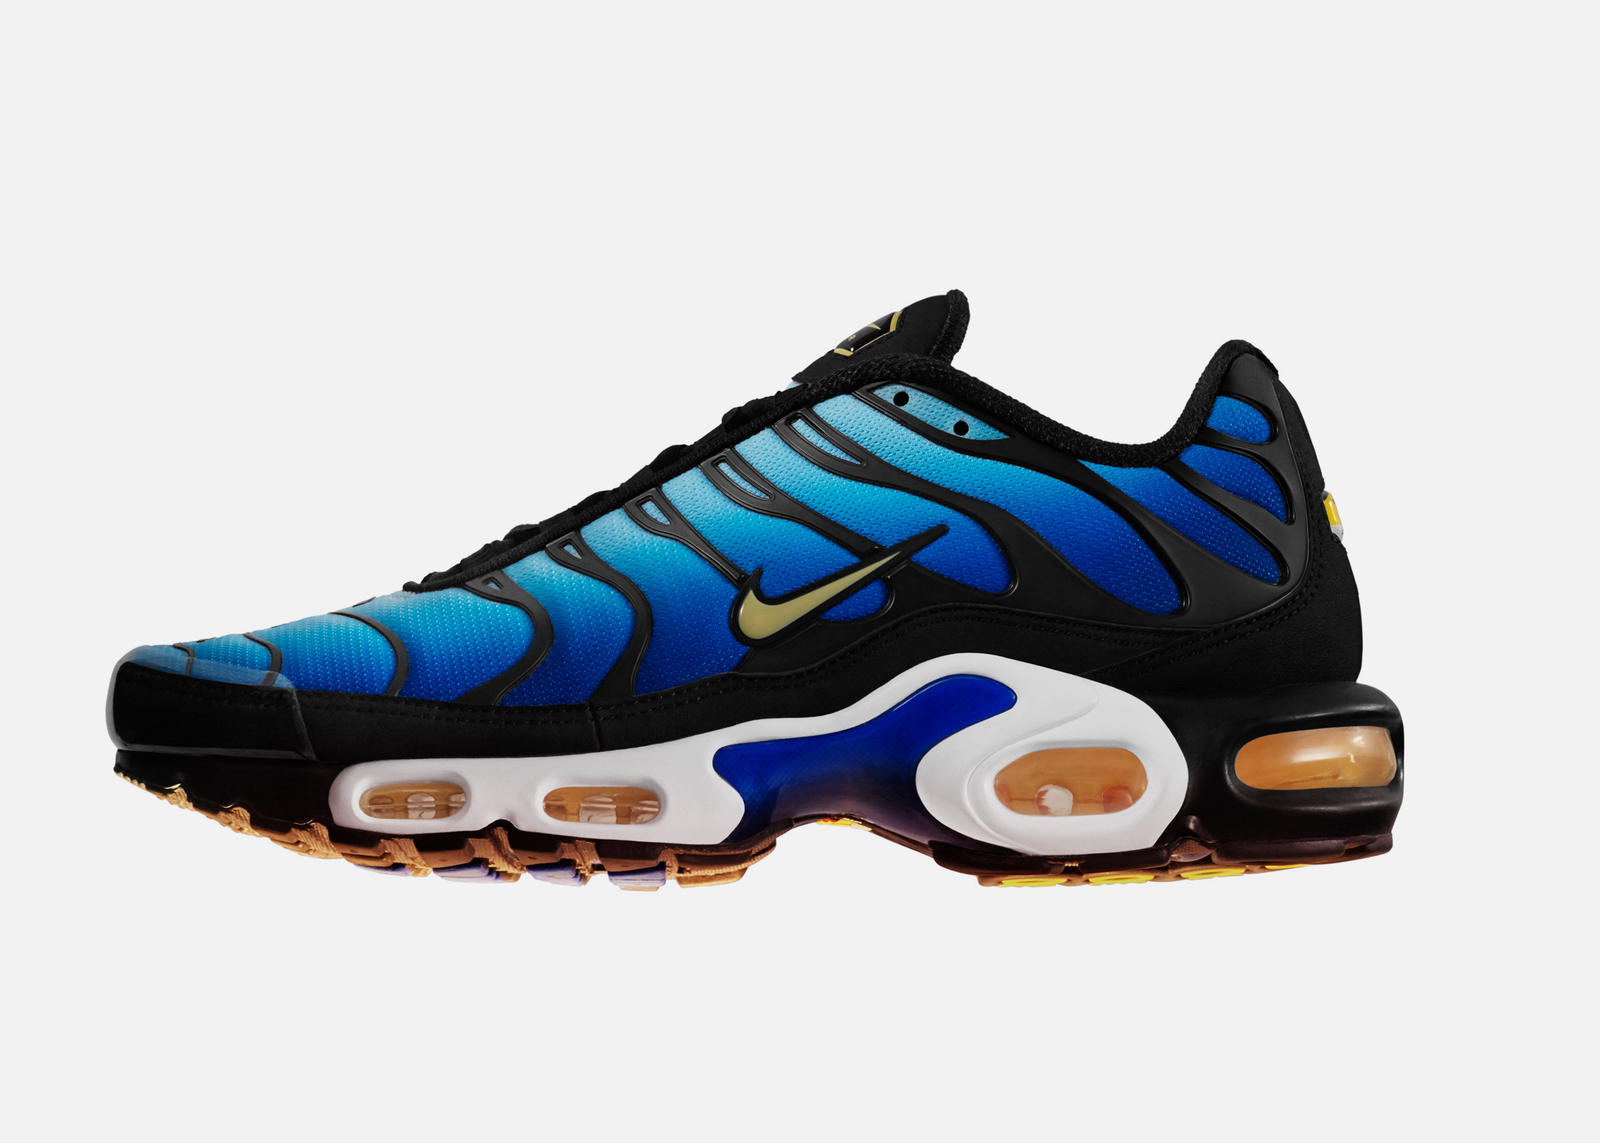 7ed02a94ffb2 The Untold Story of the Nike Air Max Plus - Nike News